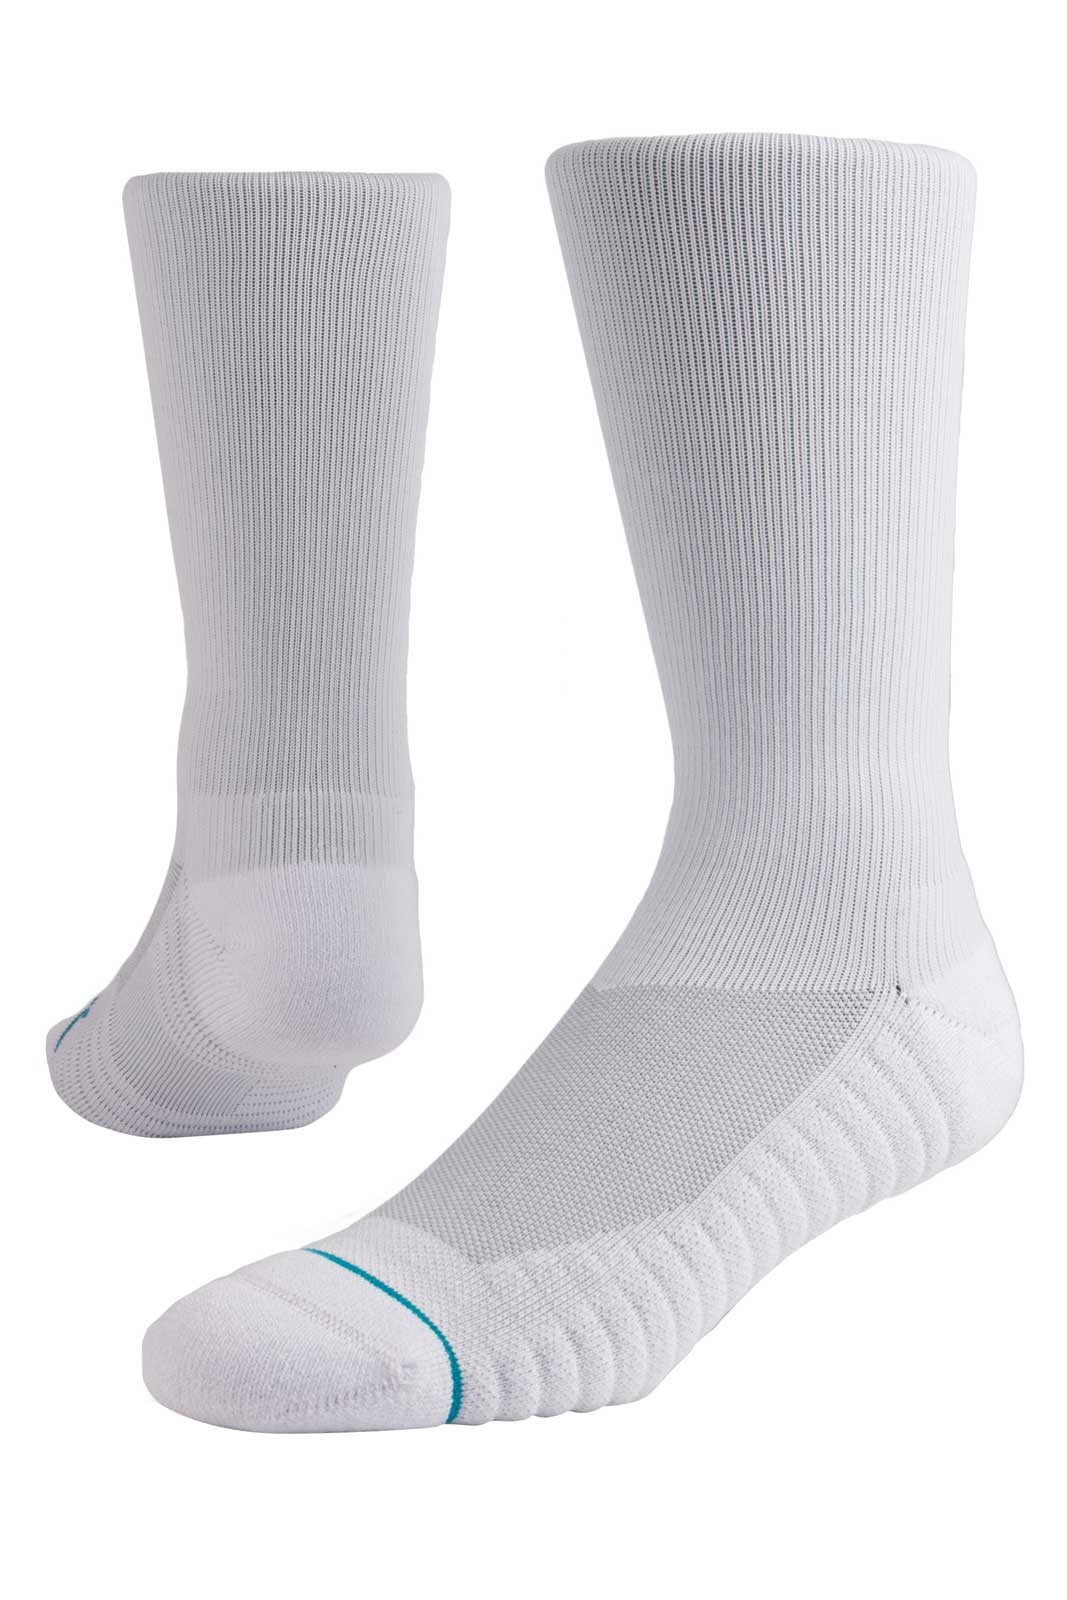 Stance Athletic Icon - Men's image 2 - The Sports Edit